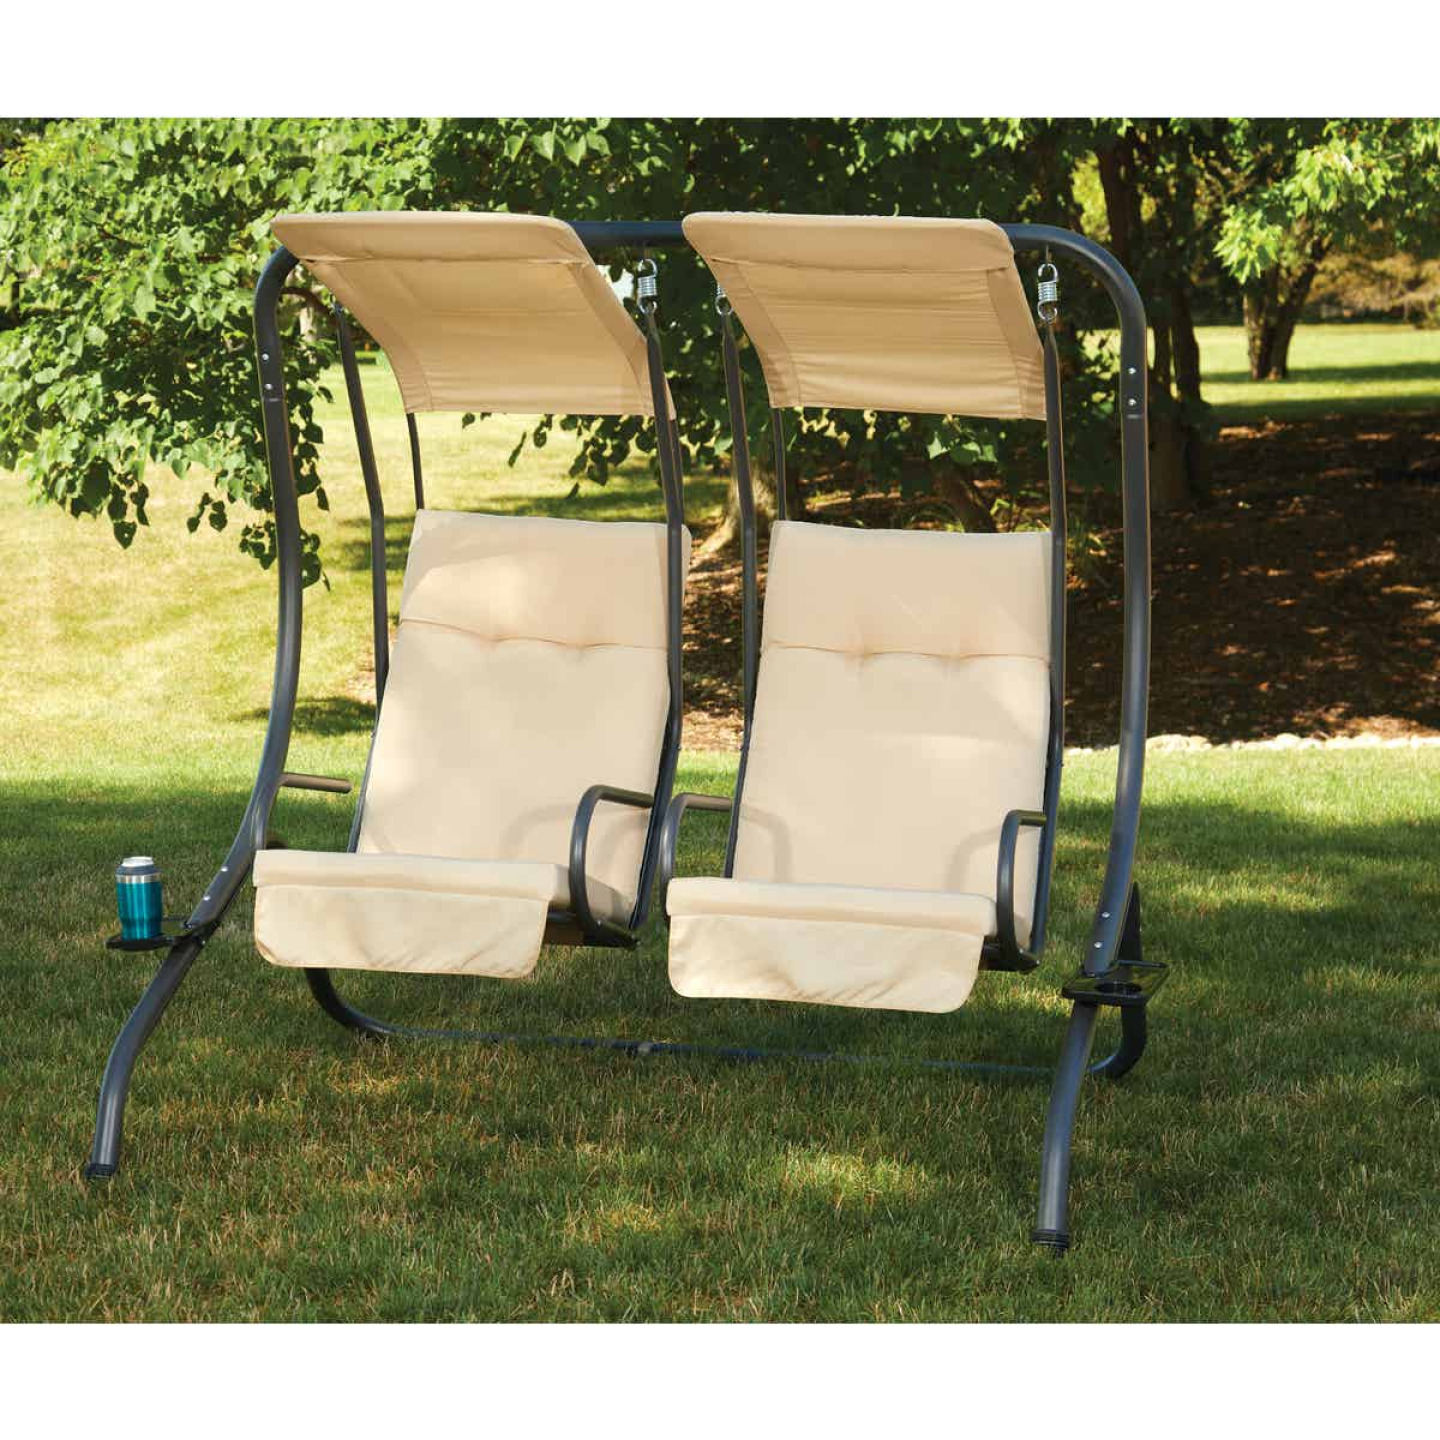 Outdoor Expressions 2-Person 67 In. W. x 67 In. H. x 53.5 In. D. Tan Patio Swing Image 3